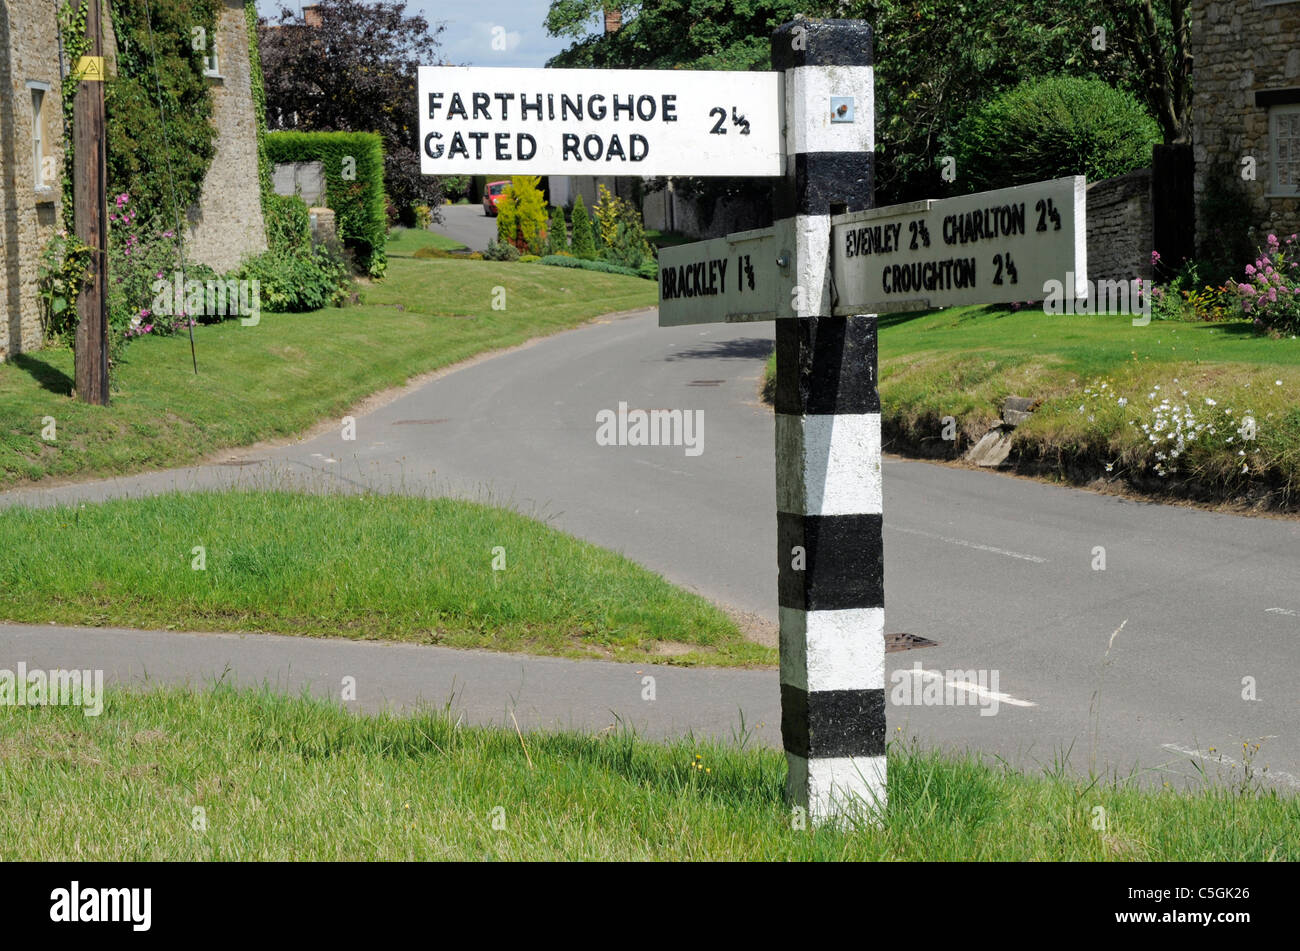 Old Black and White Road Sign in Hinton in the Hedges showing directions to Farthinghoe via a Gated Road Stock Photo